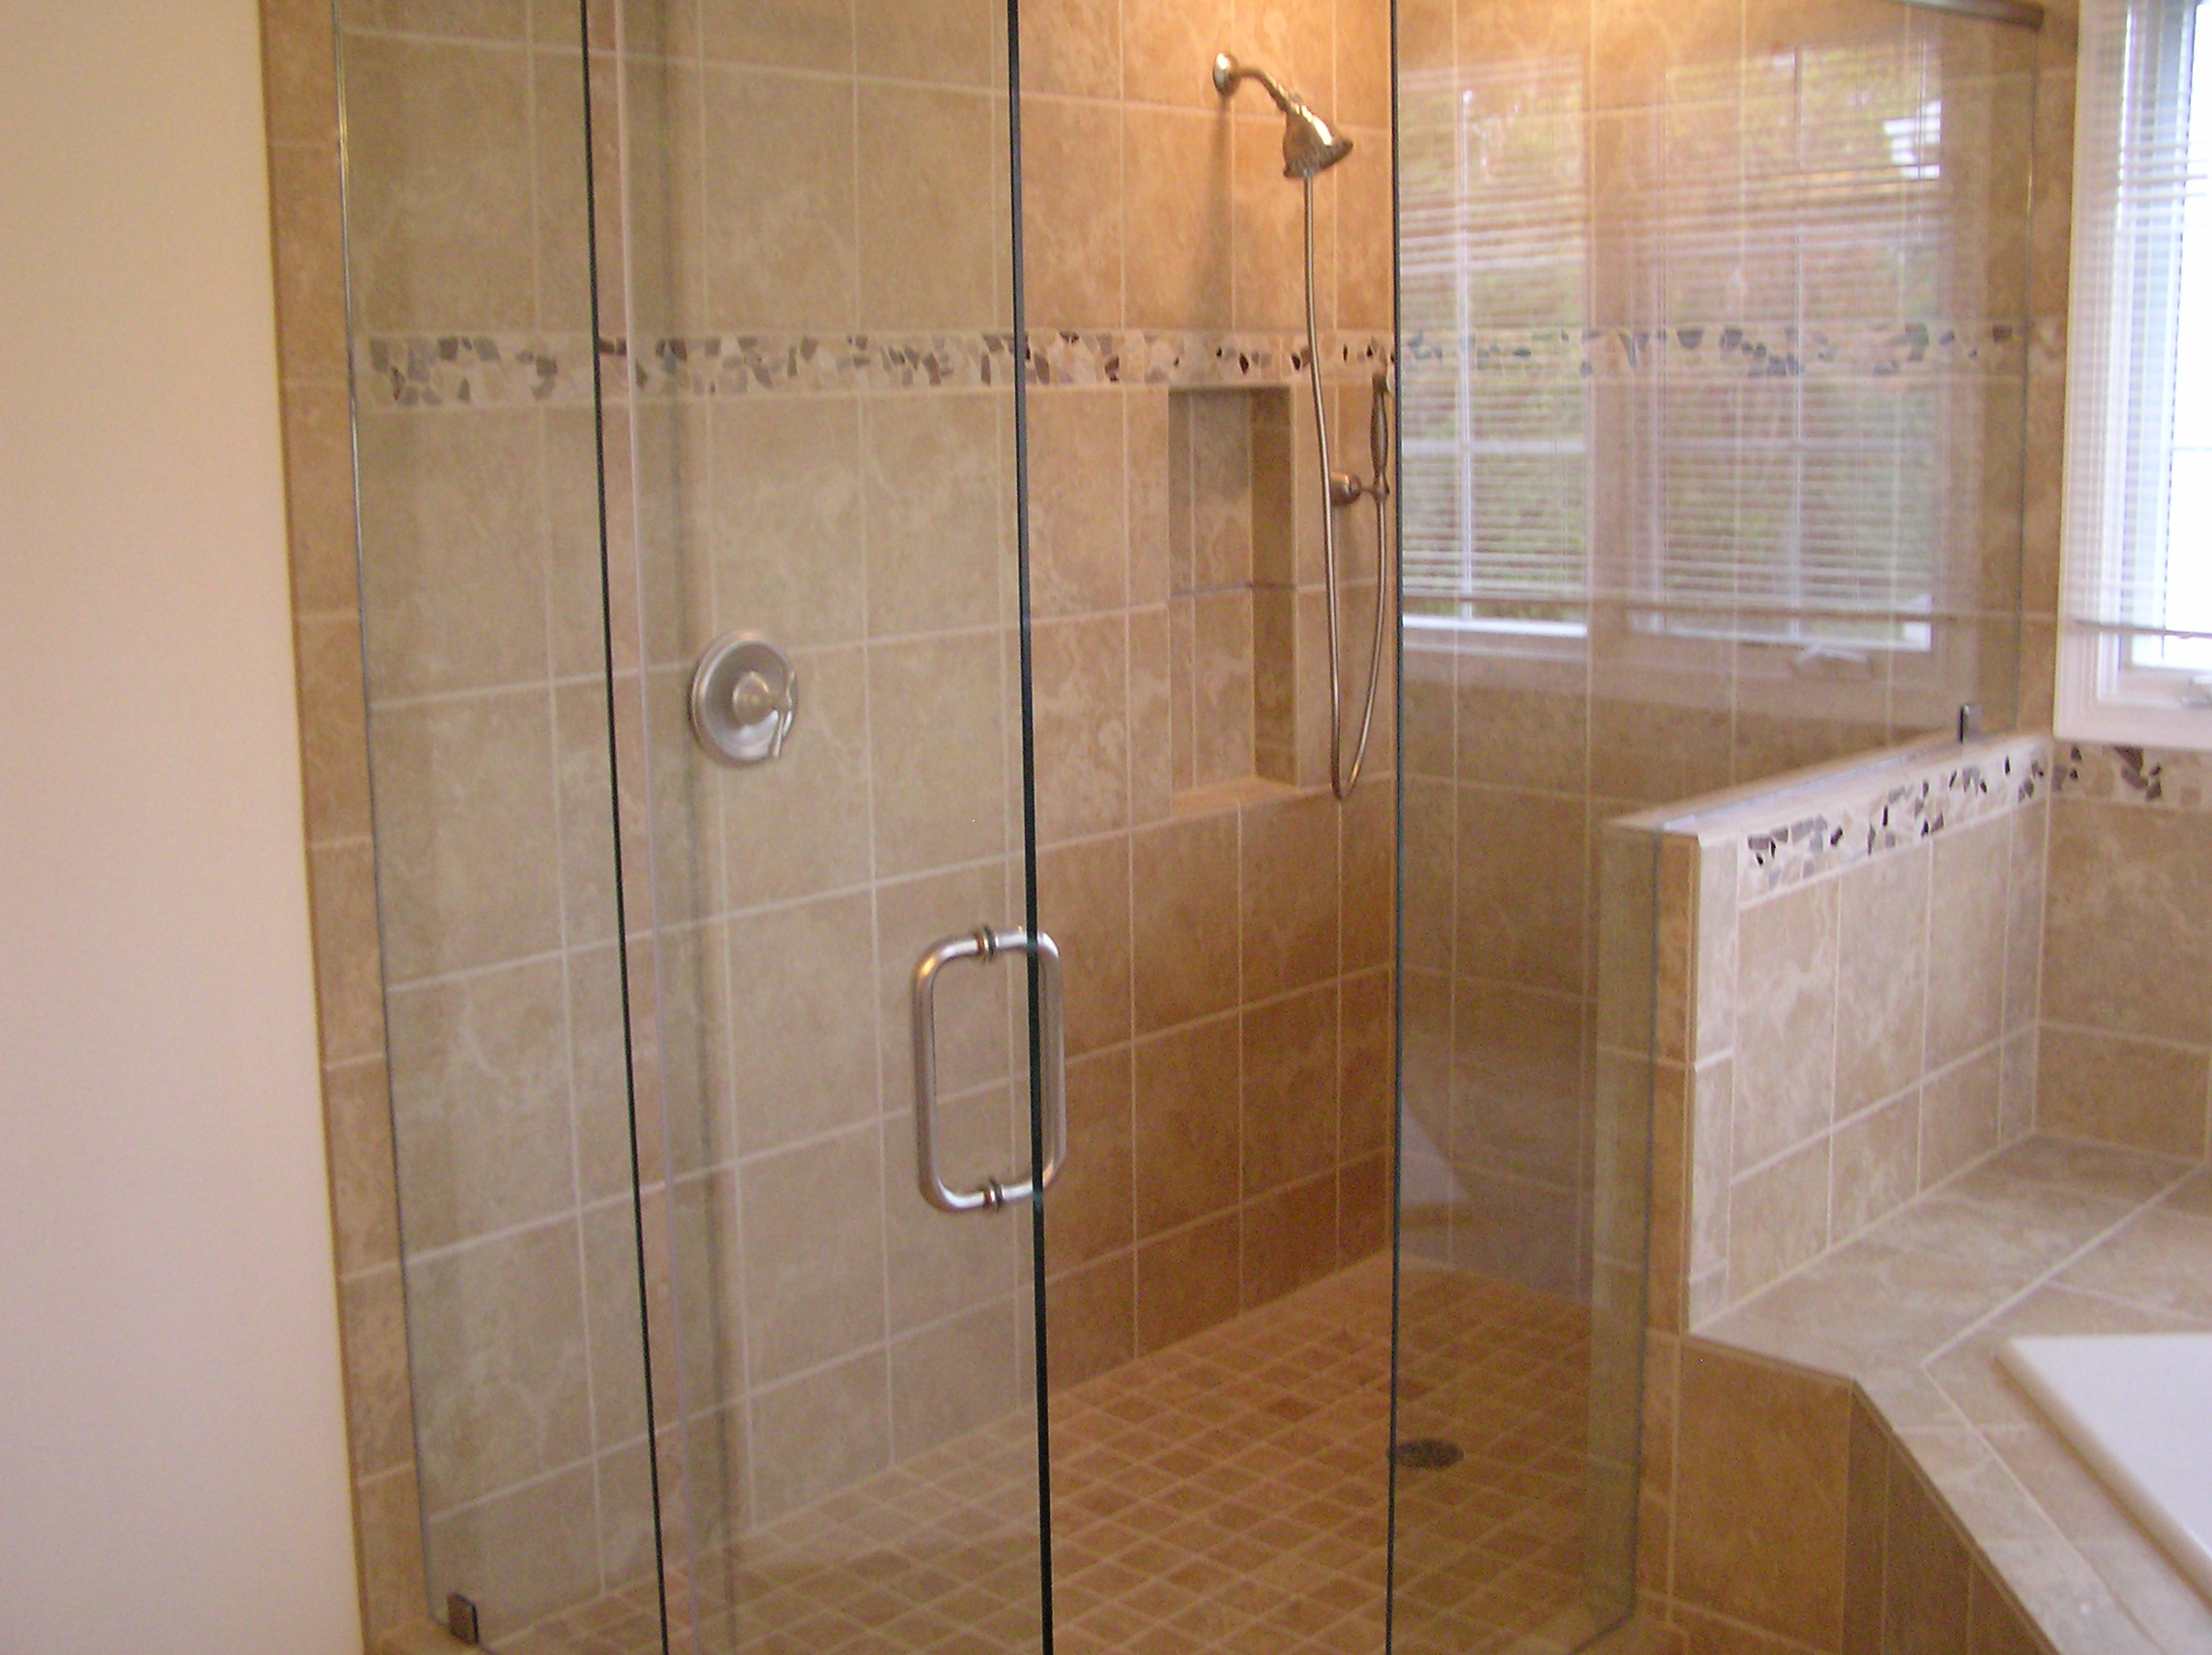 Bathroom remodel ideas homesfeed for Ideas for bathroom renovation pictures